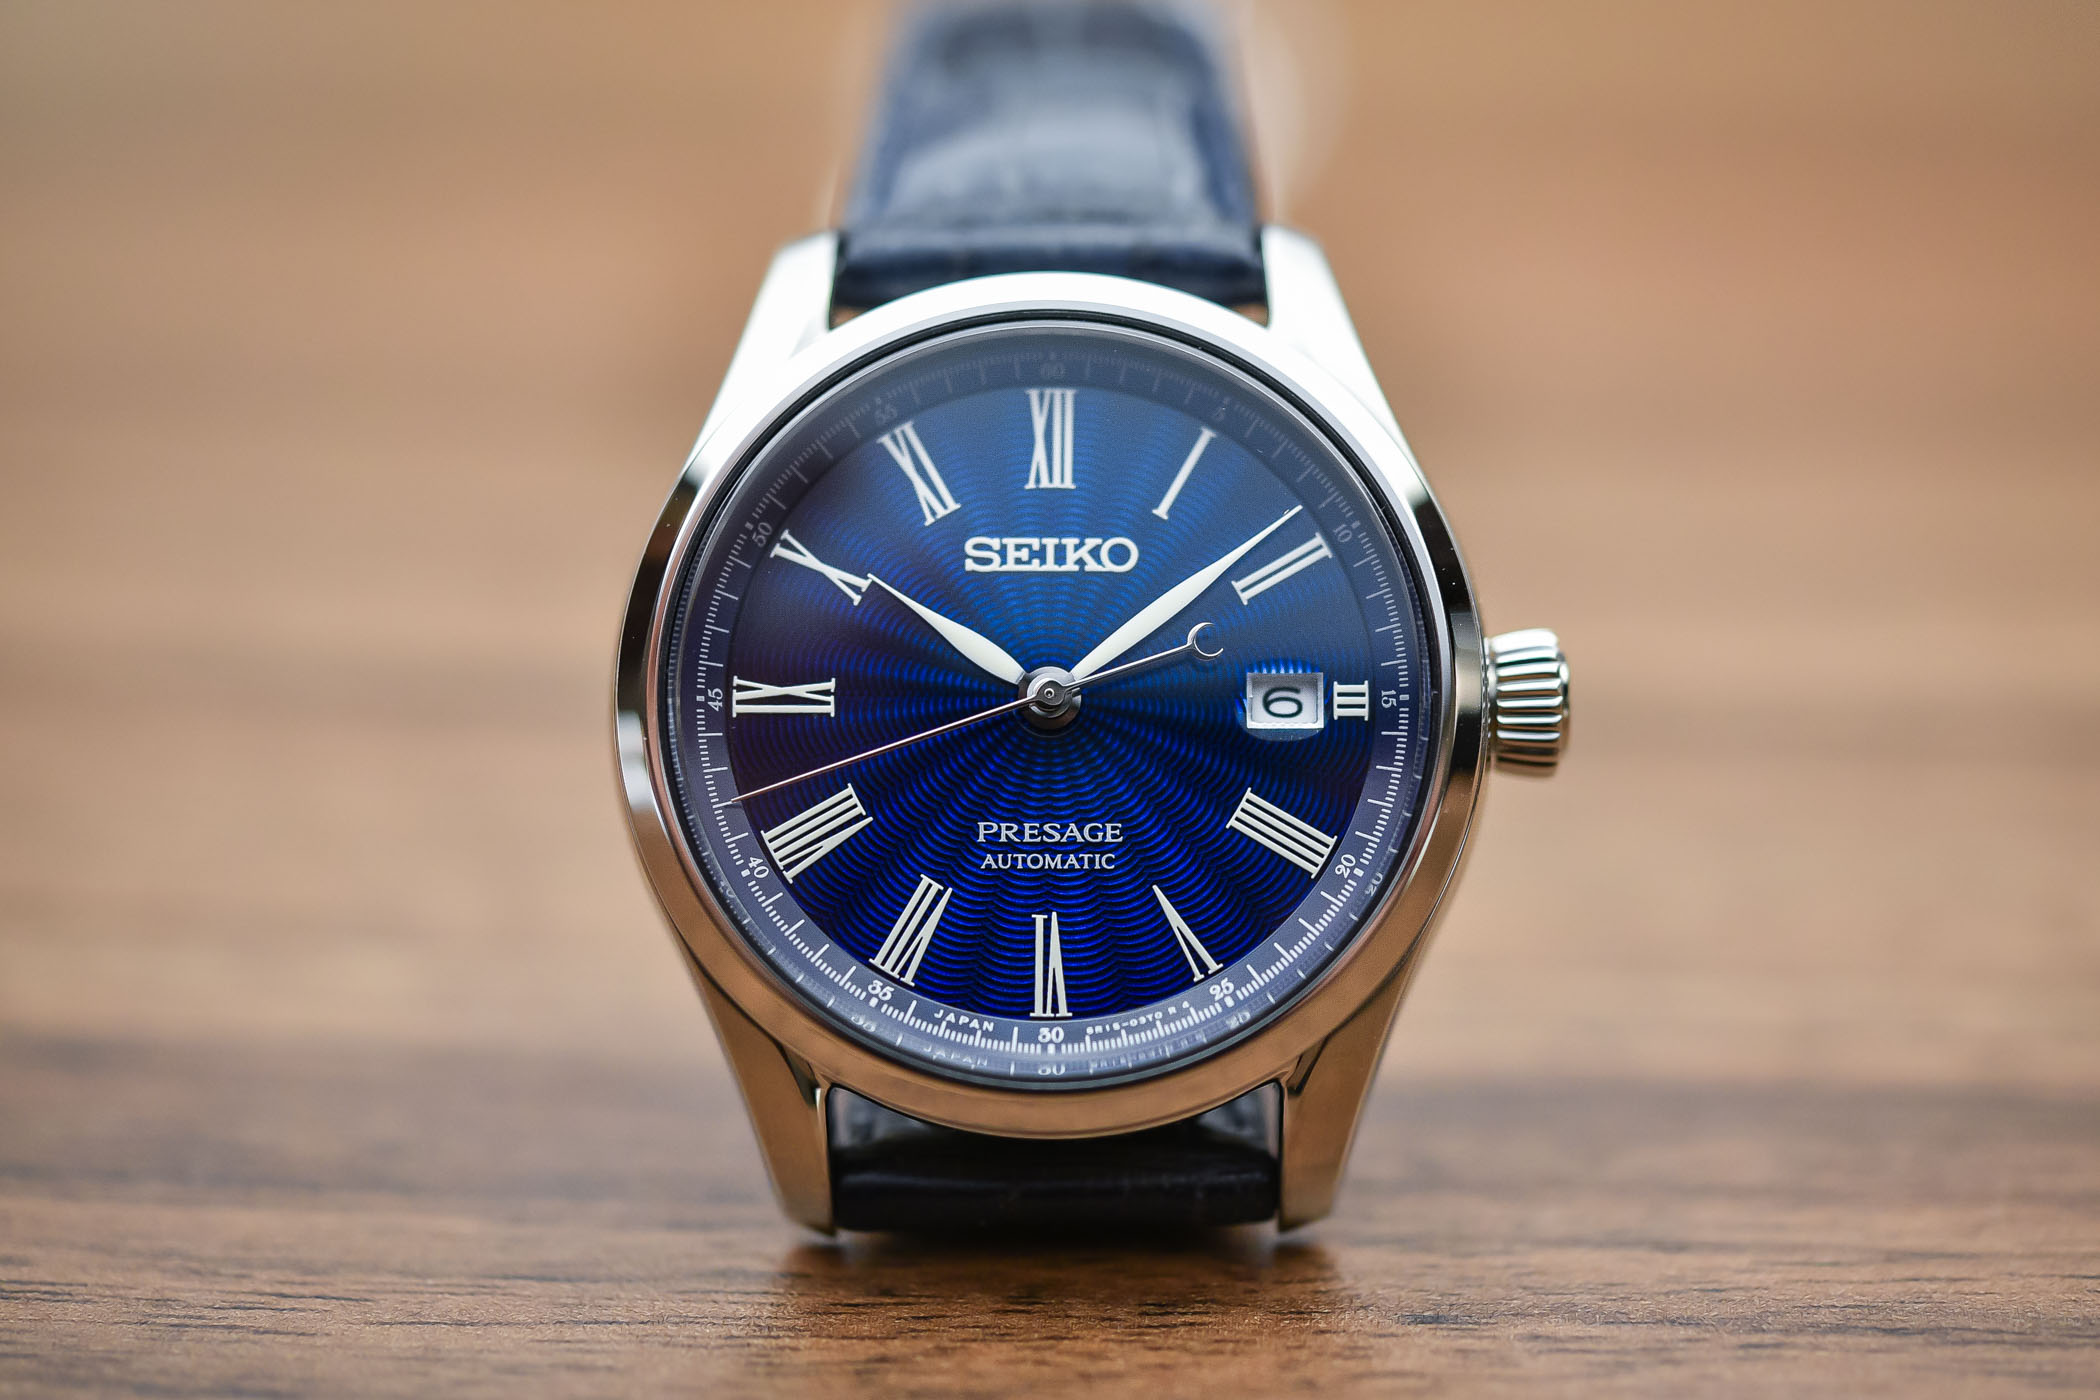 Seiko Presage Shippo Enamel Limited Edition SPB075 - Affordable Watches Baselworld 2018